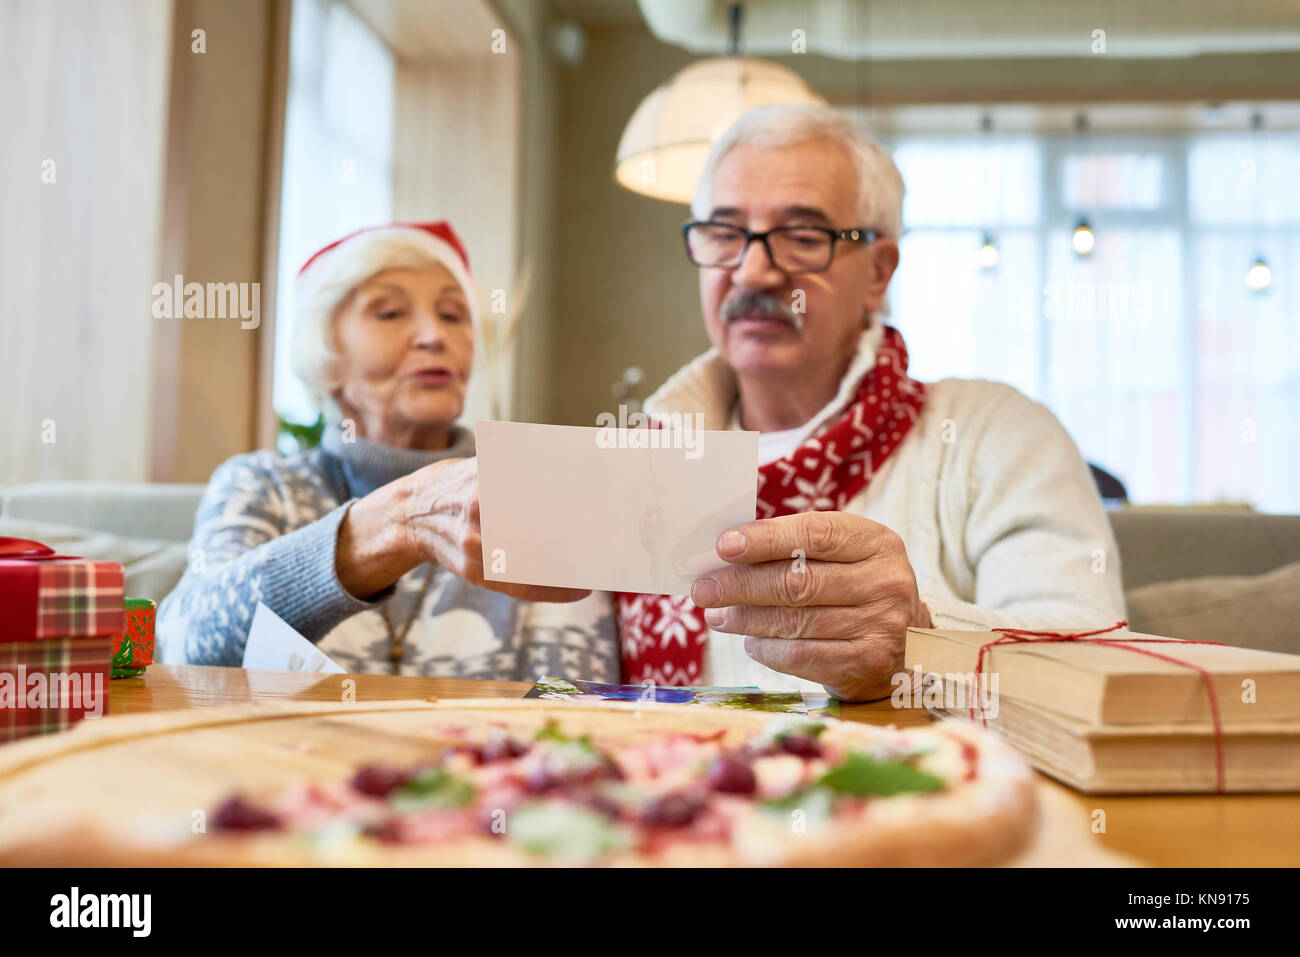 Senior Couple Looking at Family Photos - Stock Image